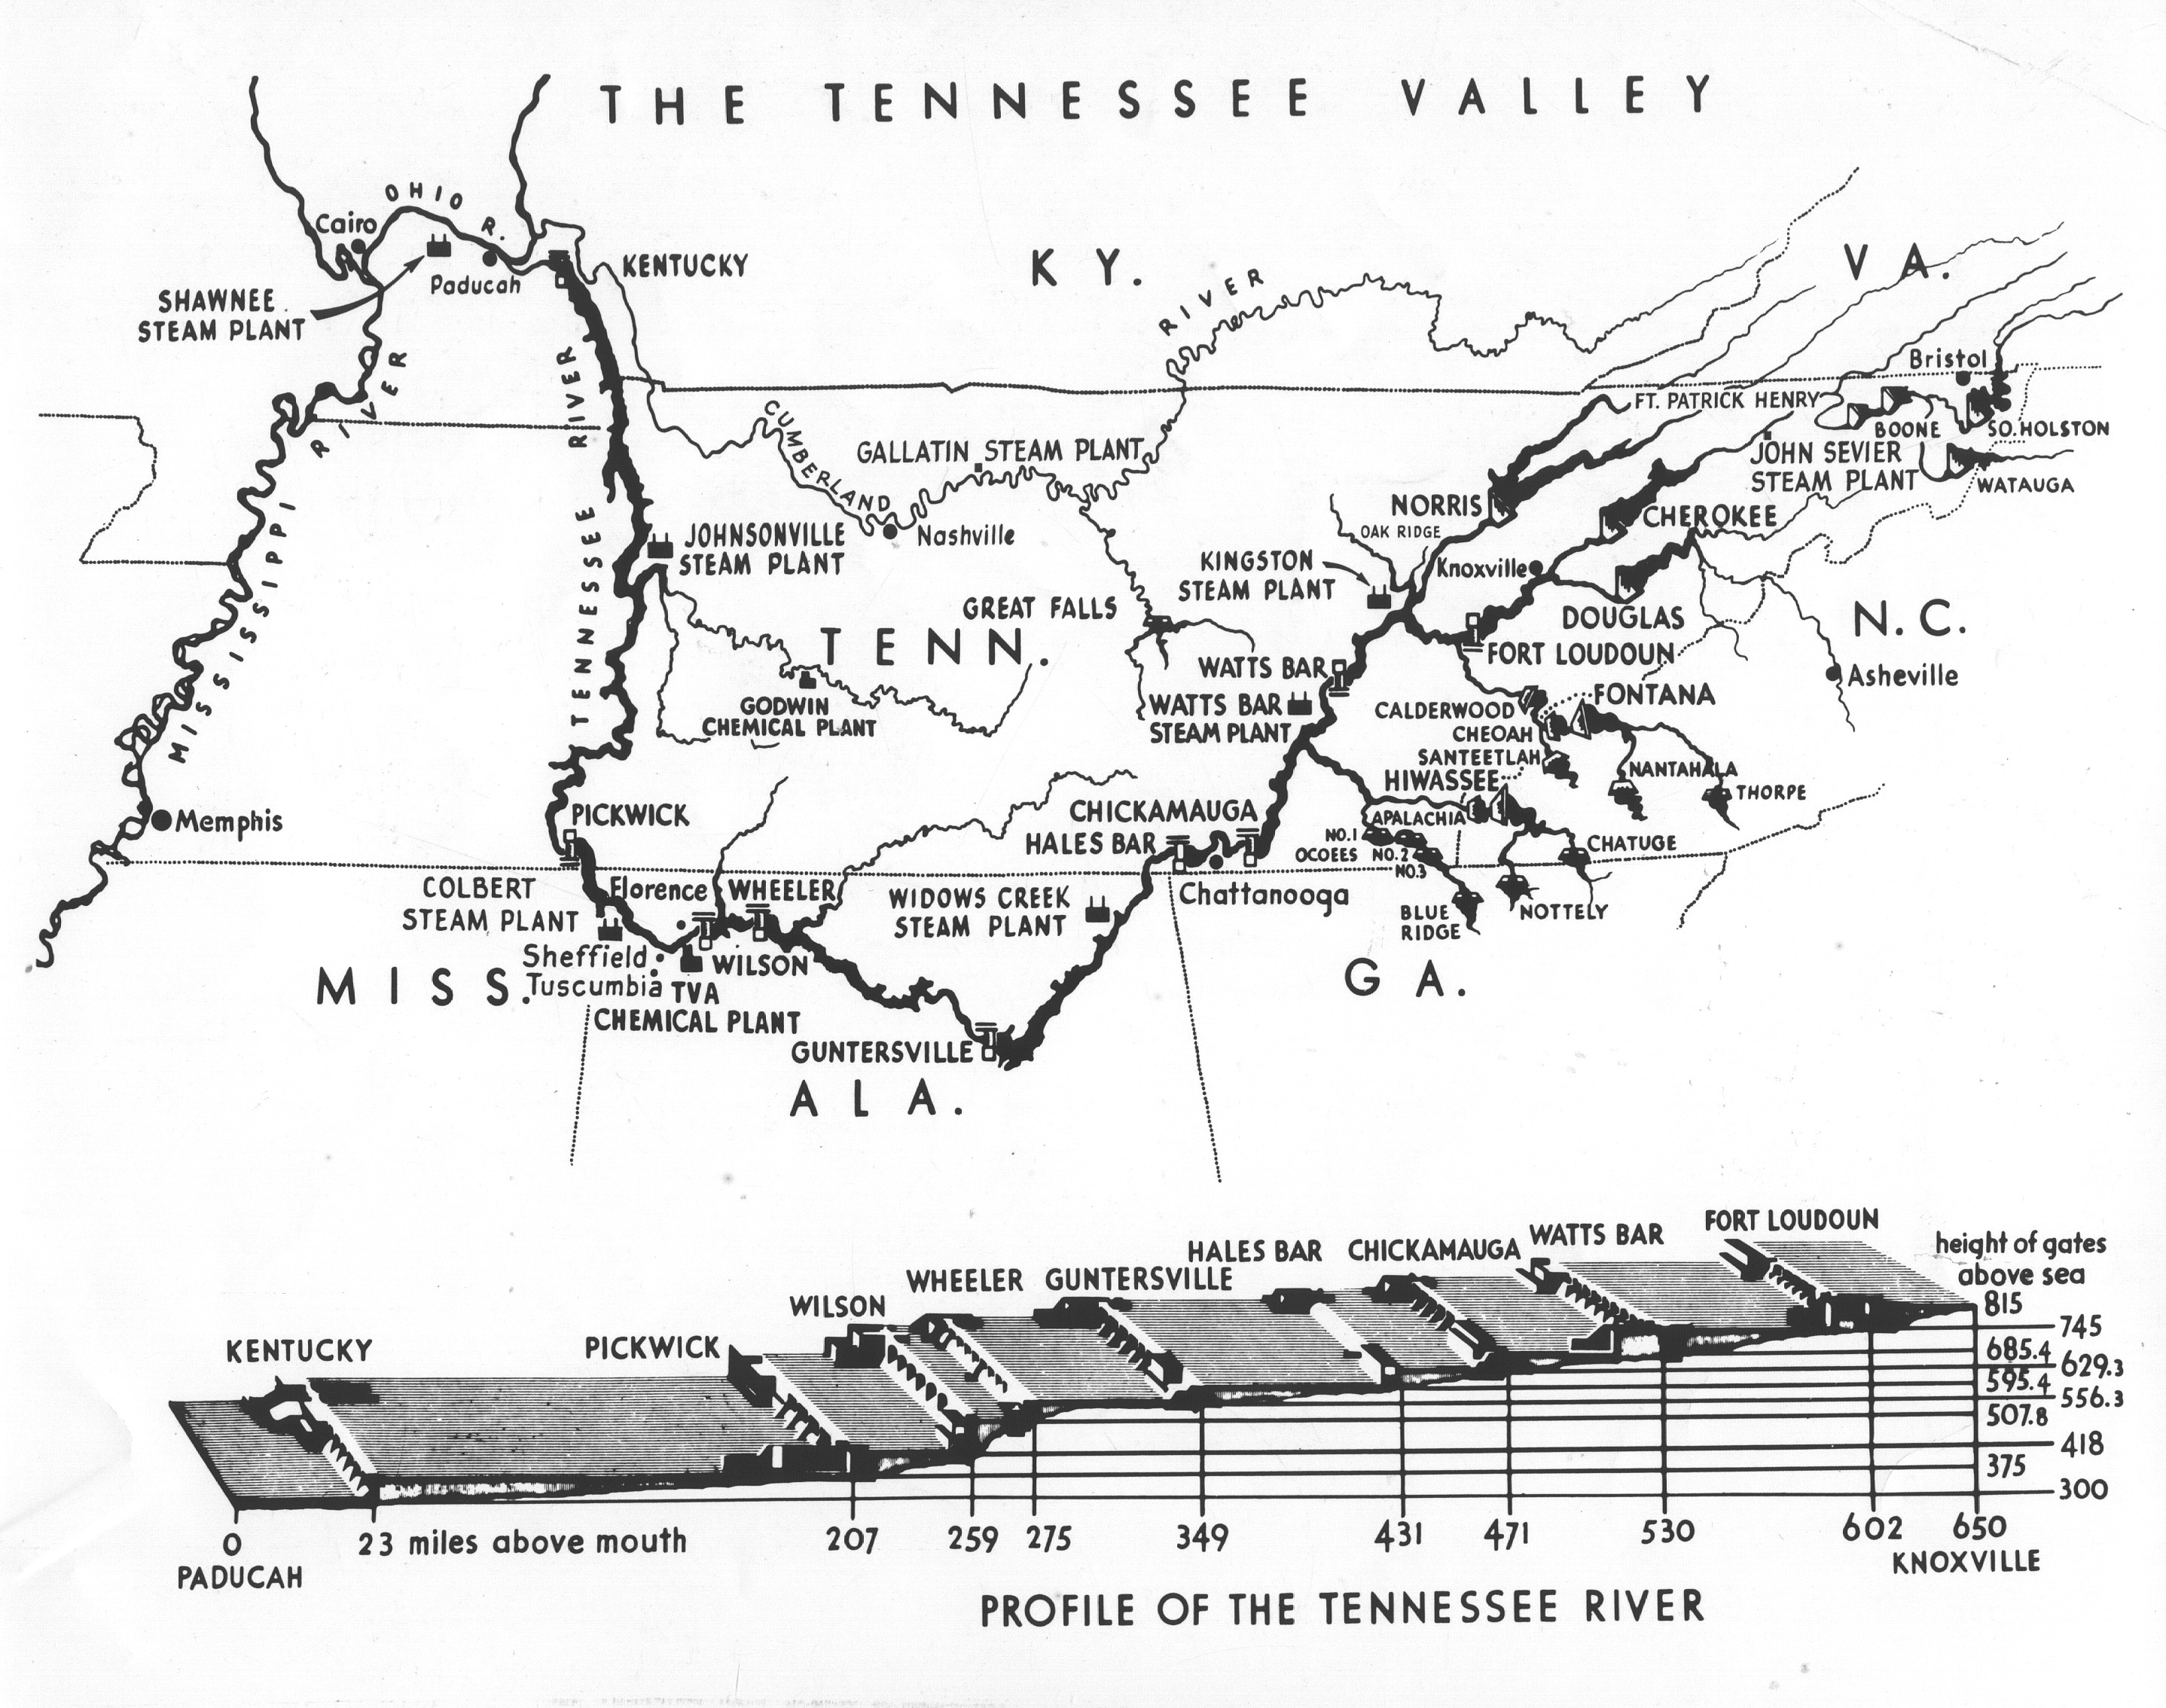 Tennessee State Library And Archives Photograph And Image Search - Tn river map